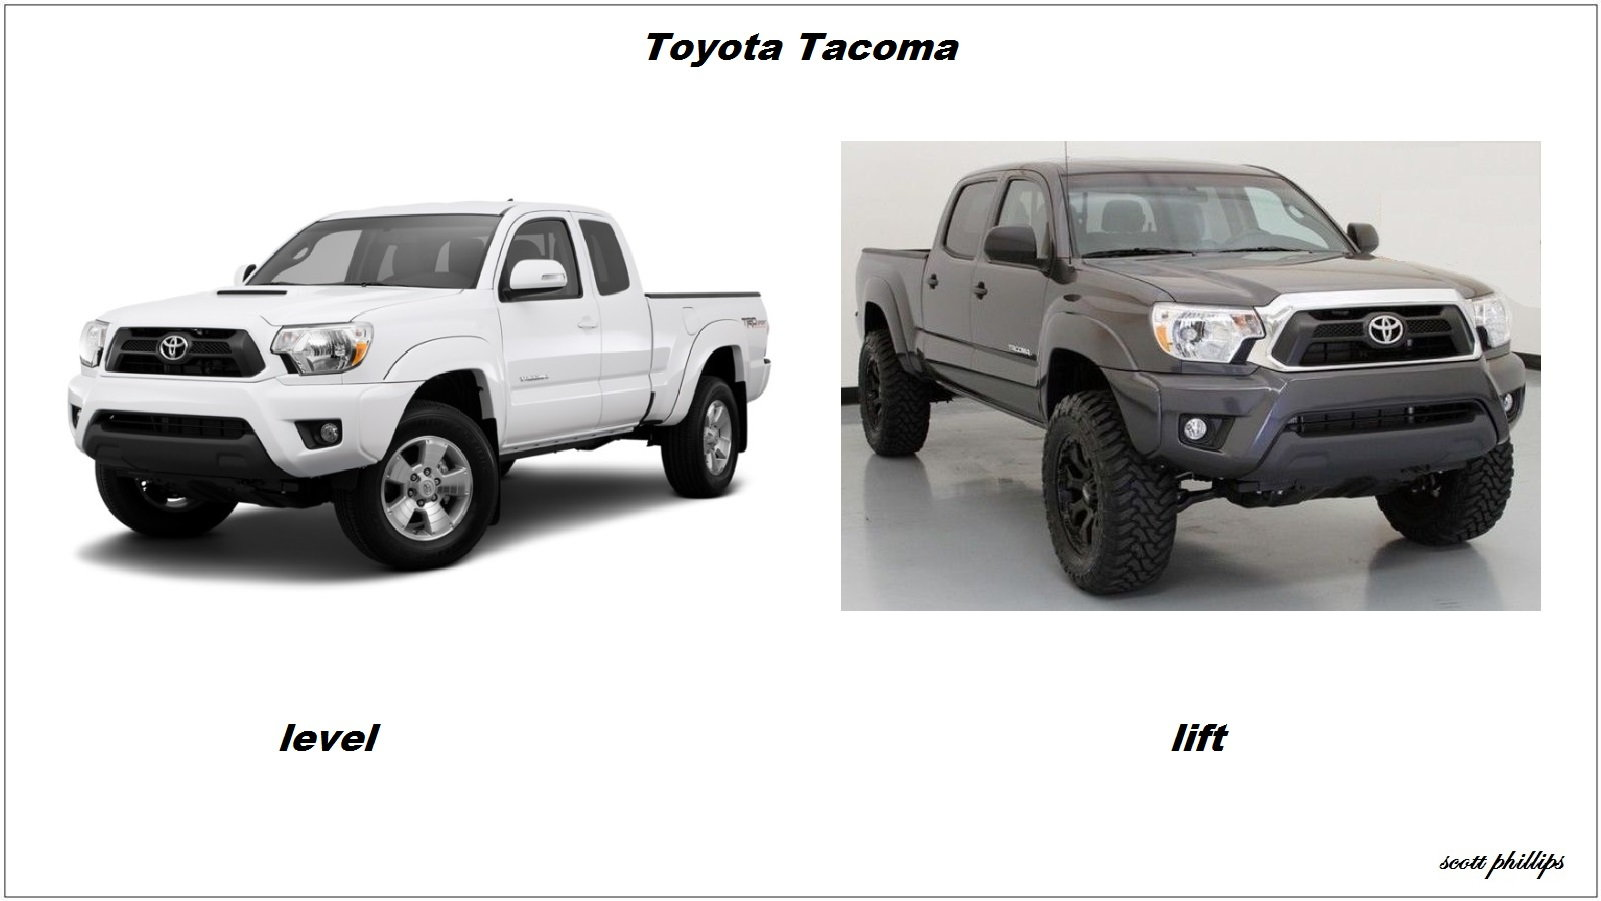 toyota tacoma lift kit springs dampers DIY modifications